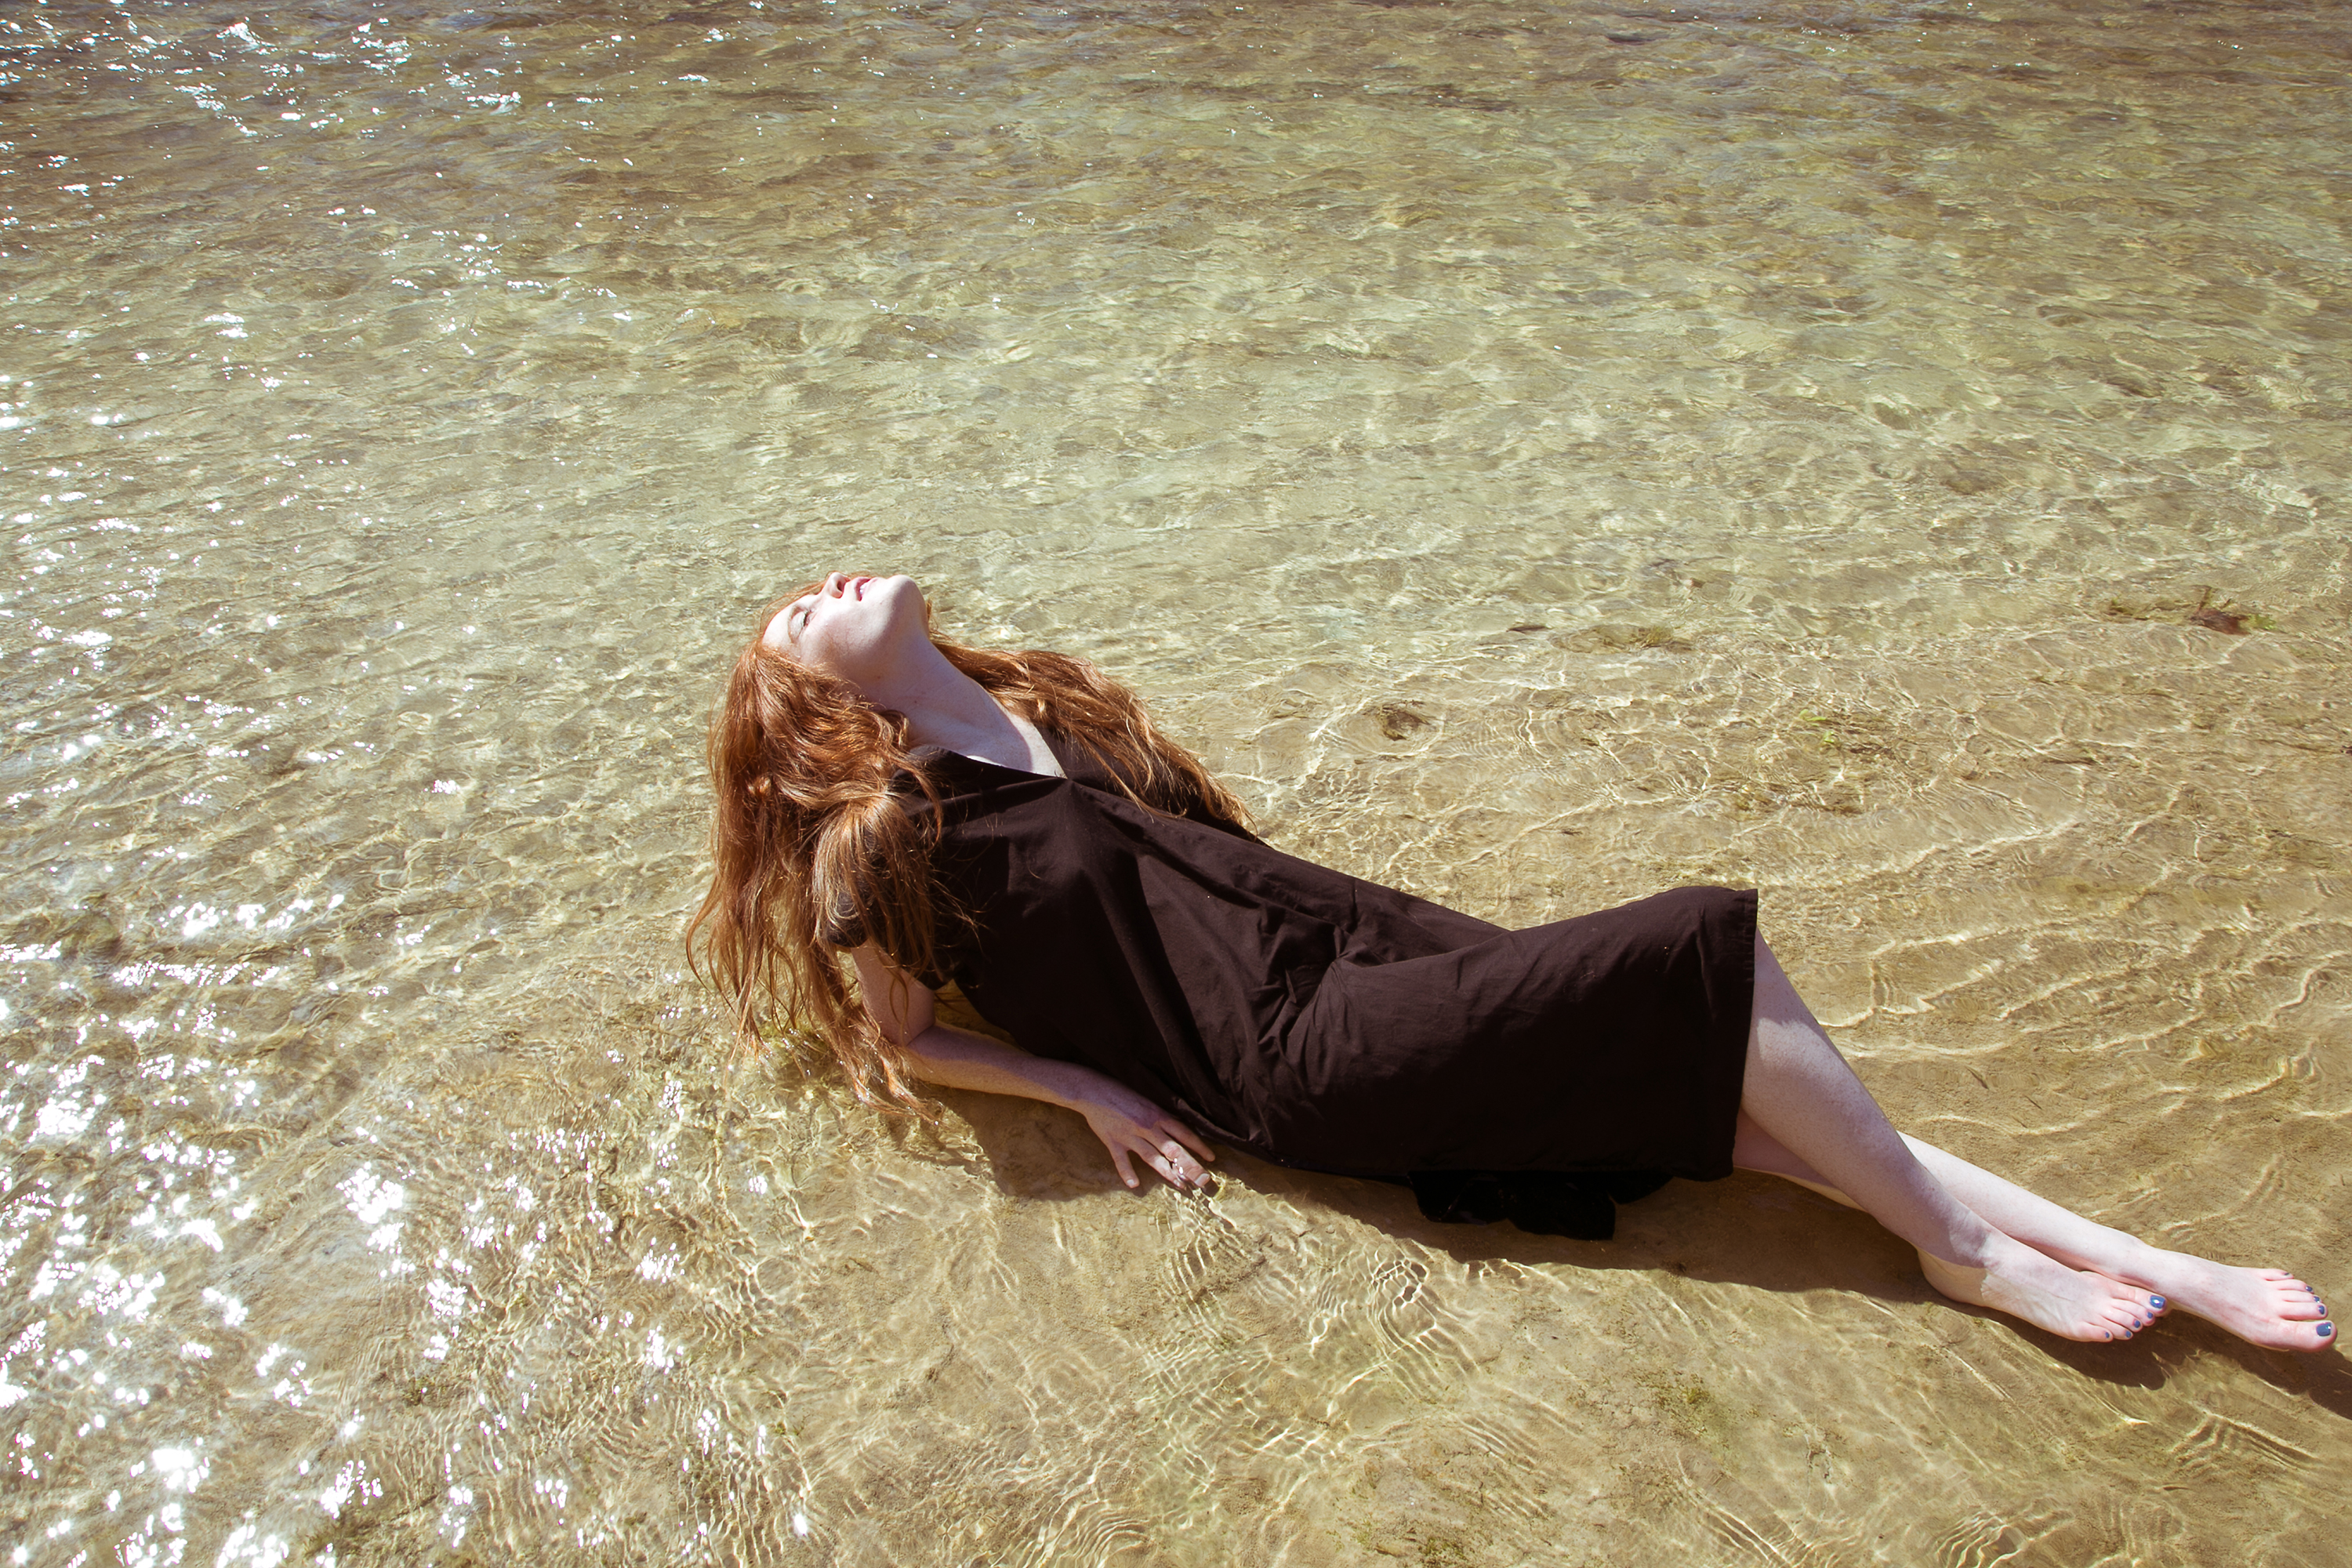 Woman with brown dress on sunbathing in the shallow water